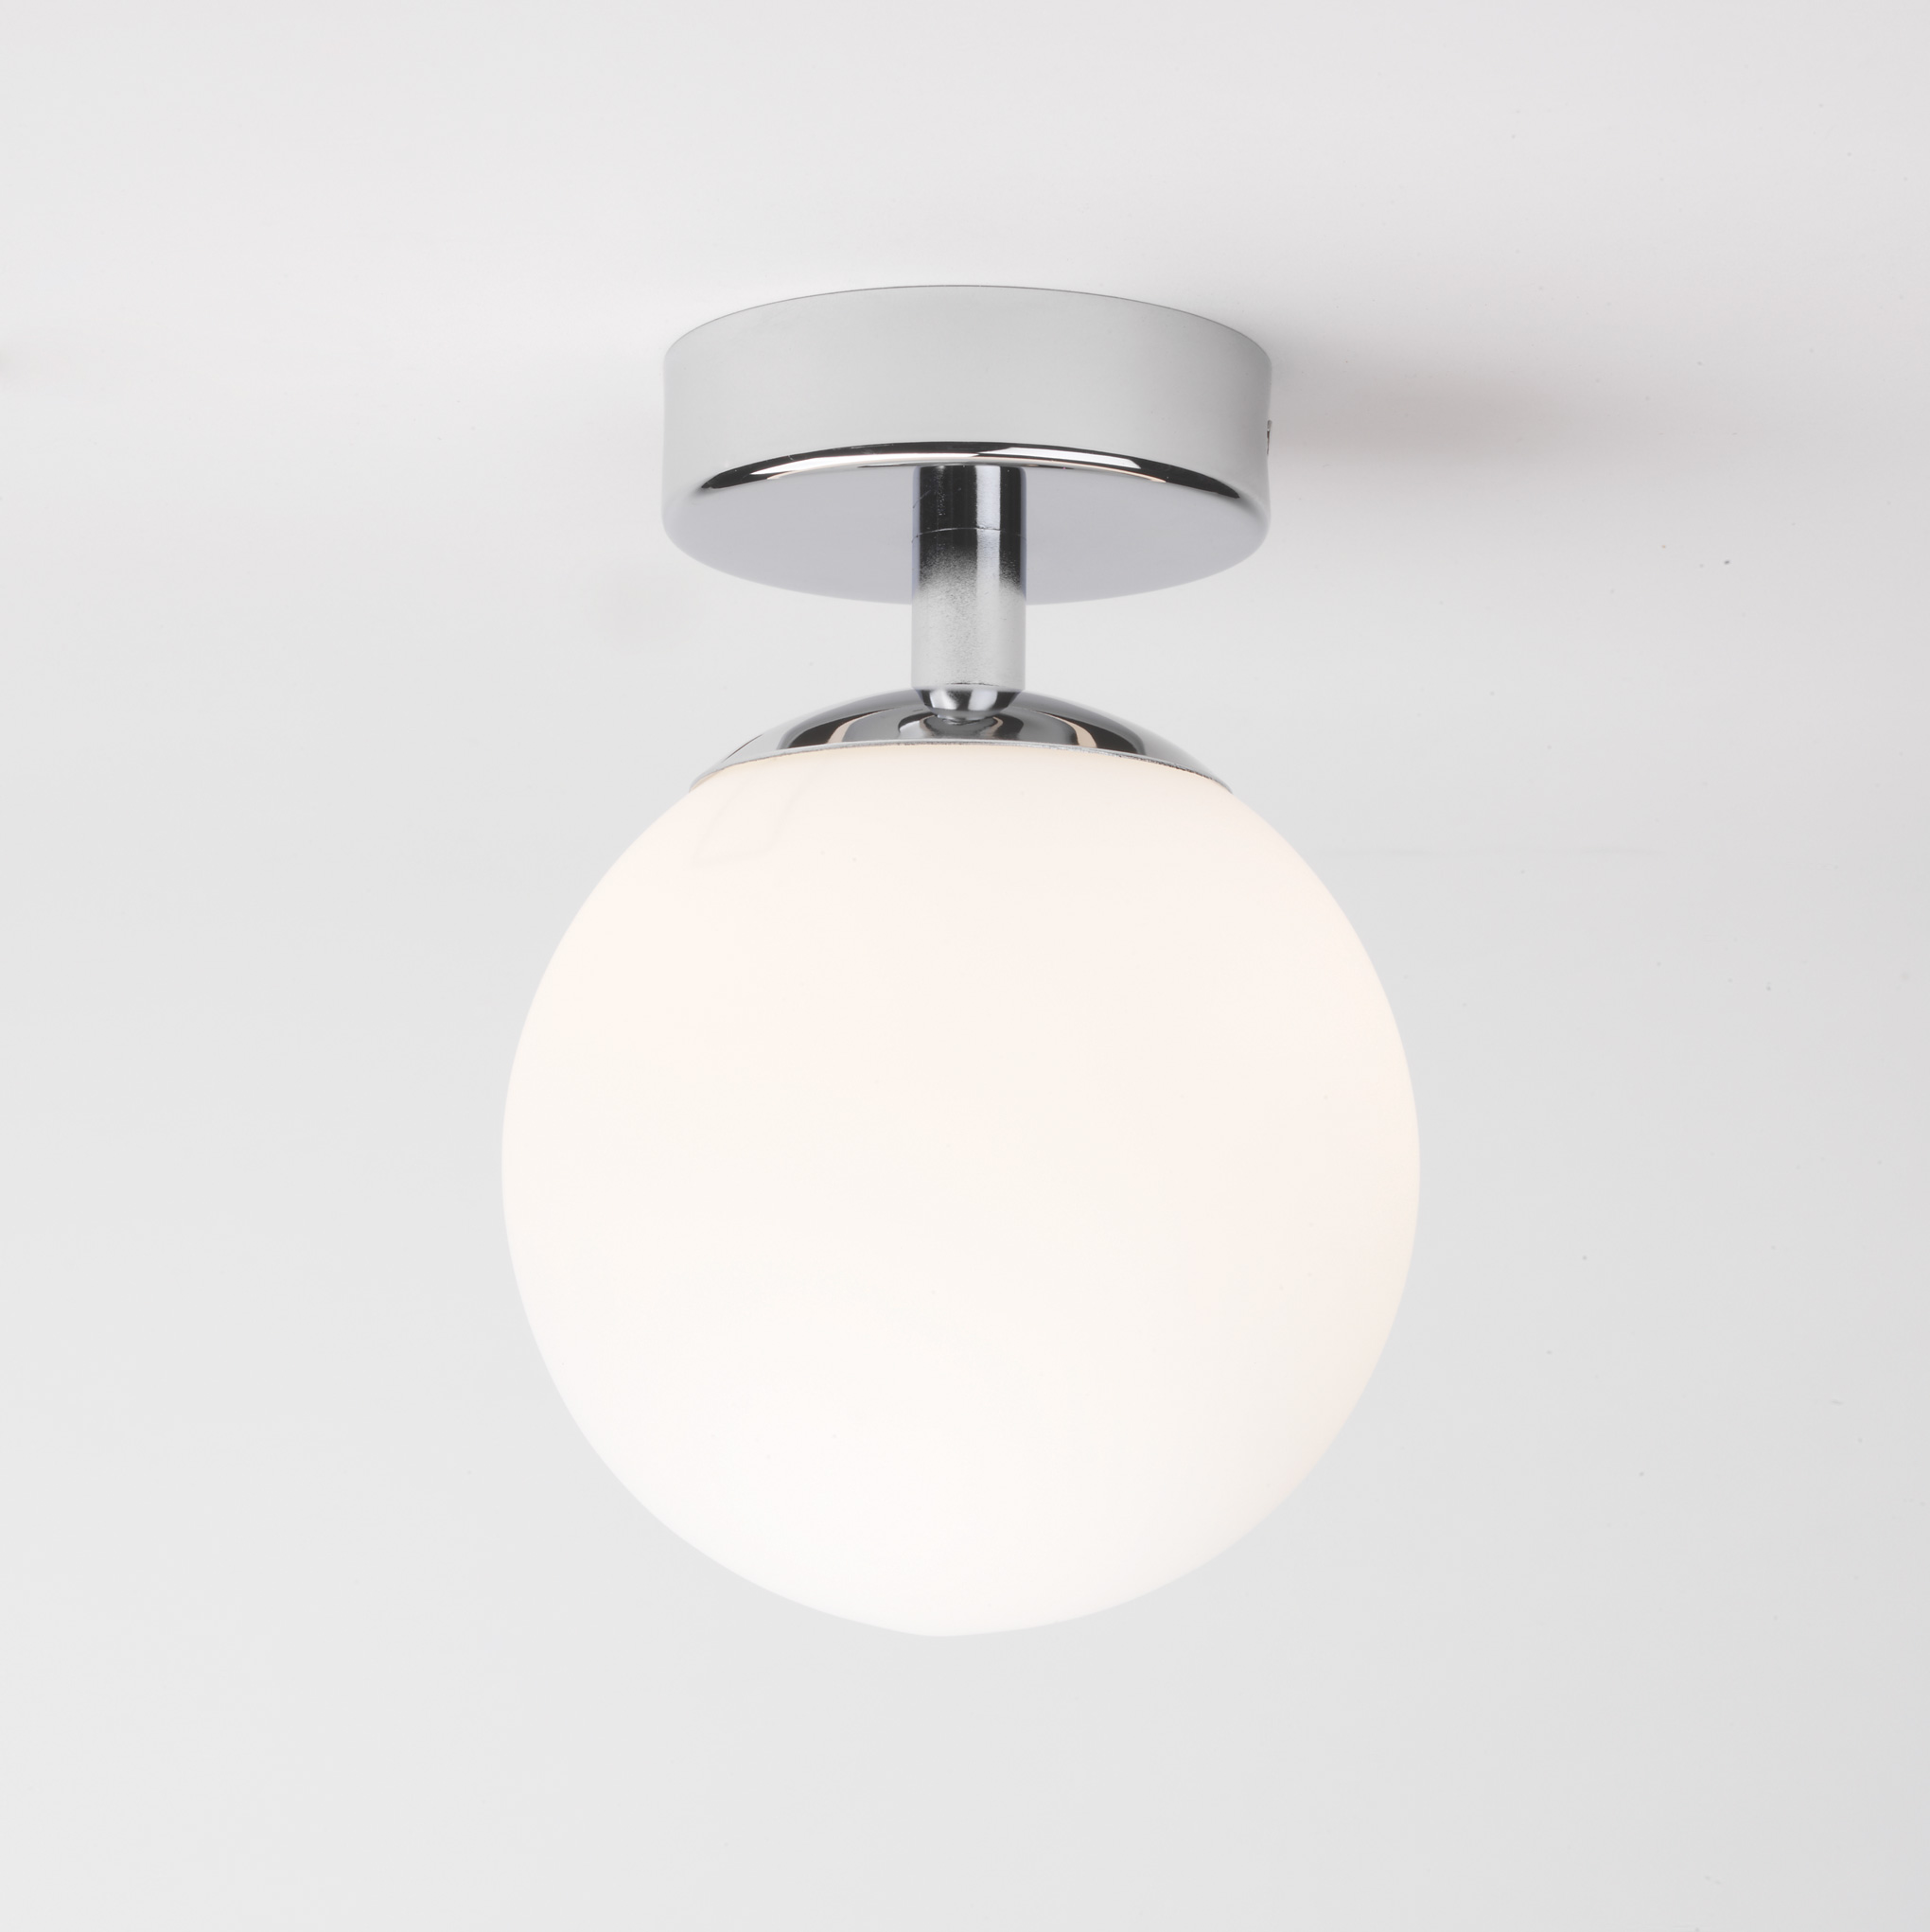 Astro Denver 0323 Bathroom glass small globe ceiling light chrome 40W G9 Thumbnail 1